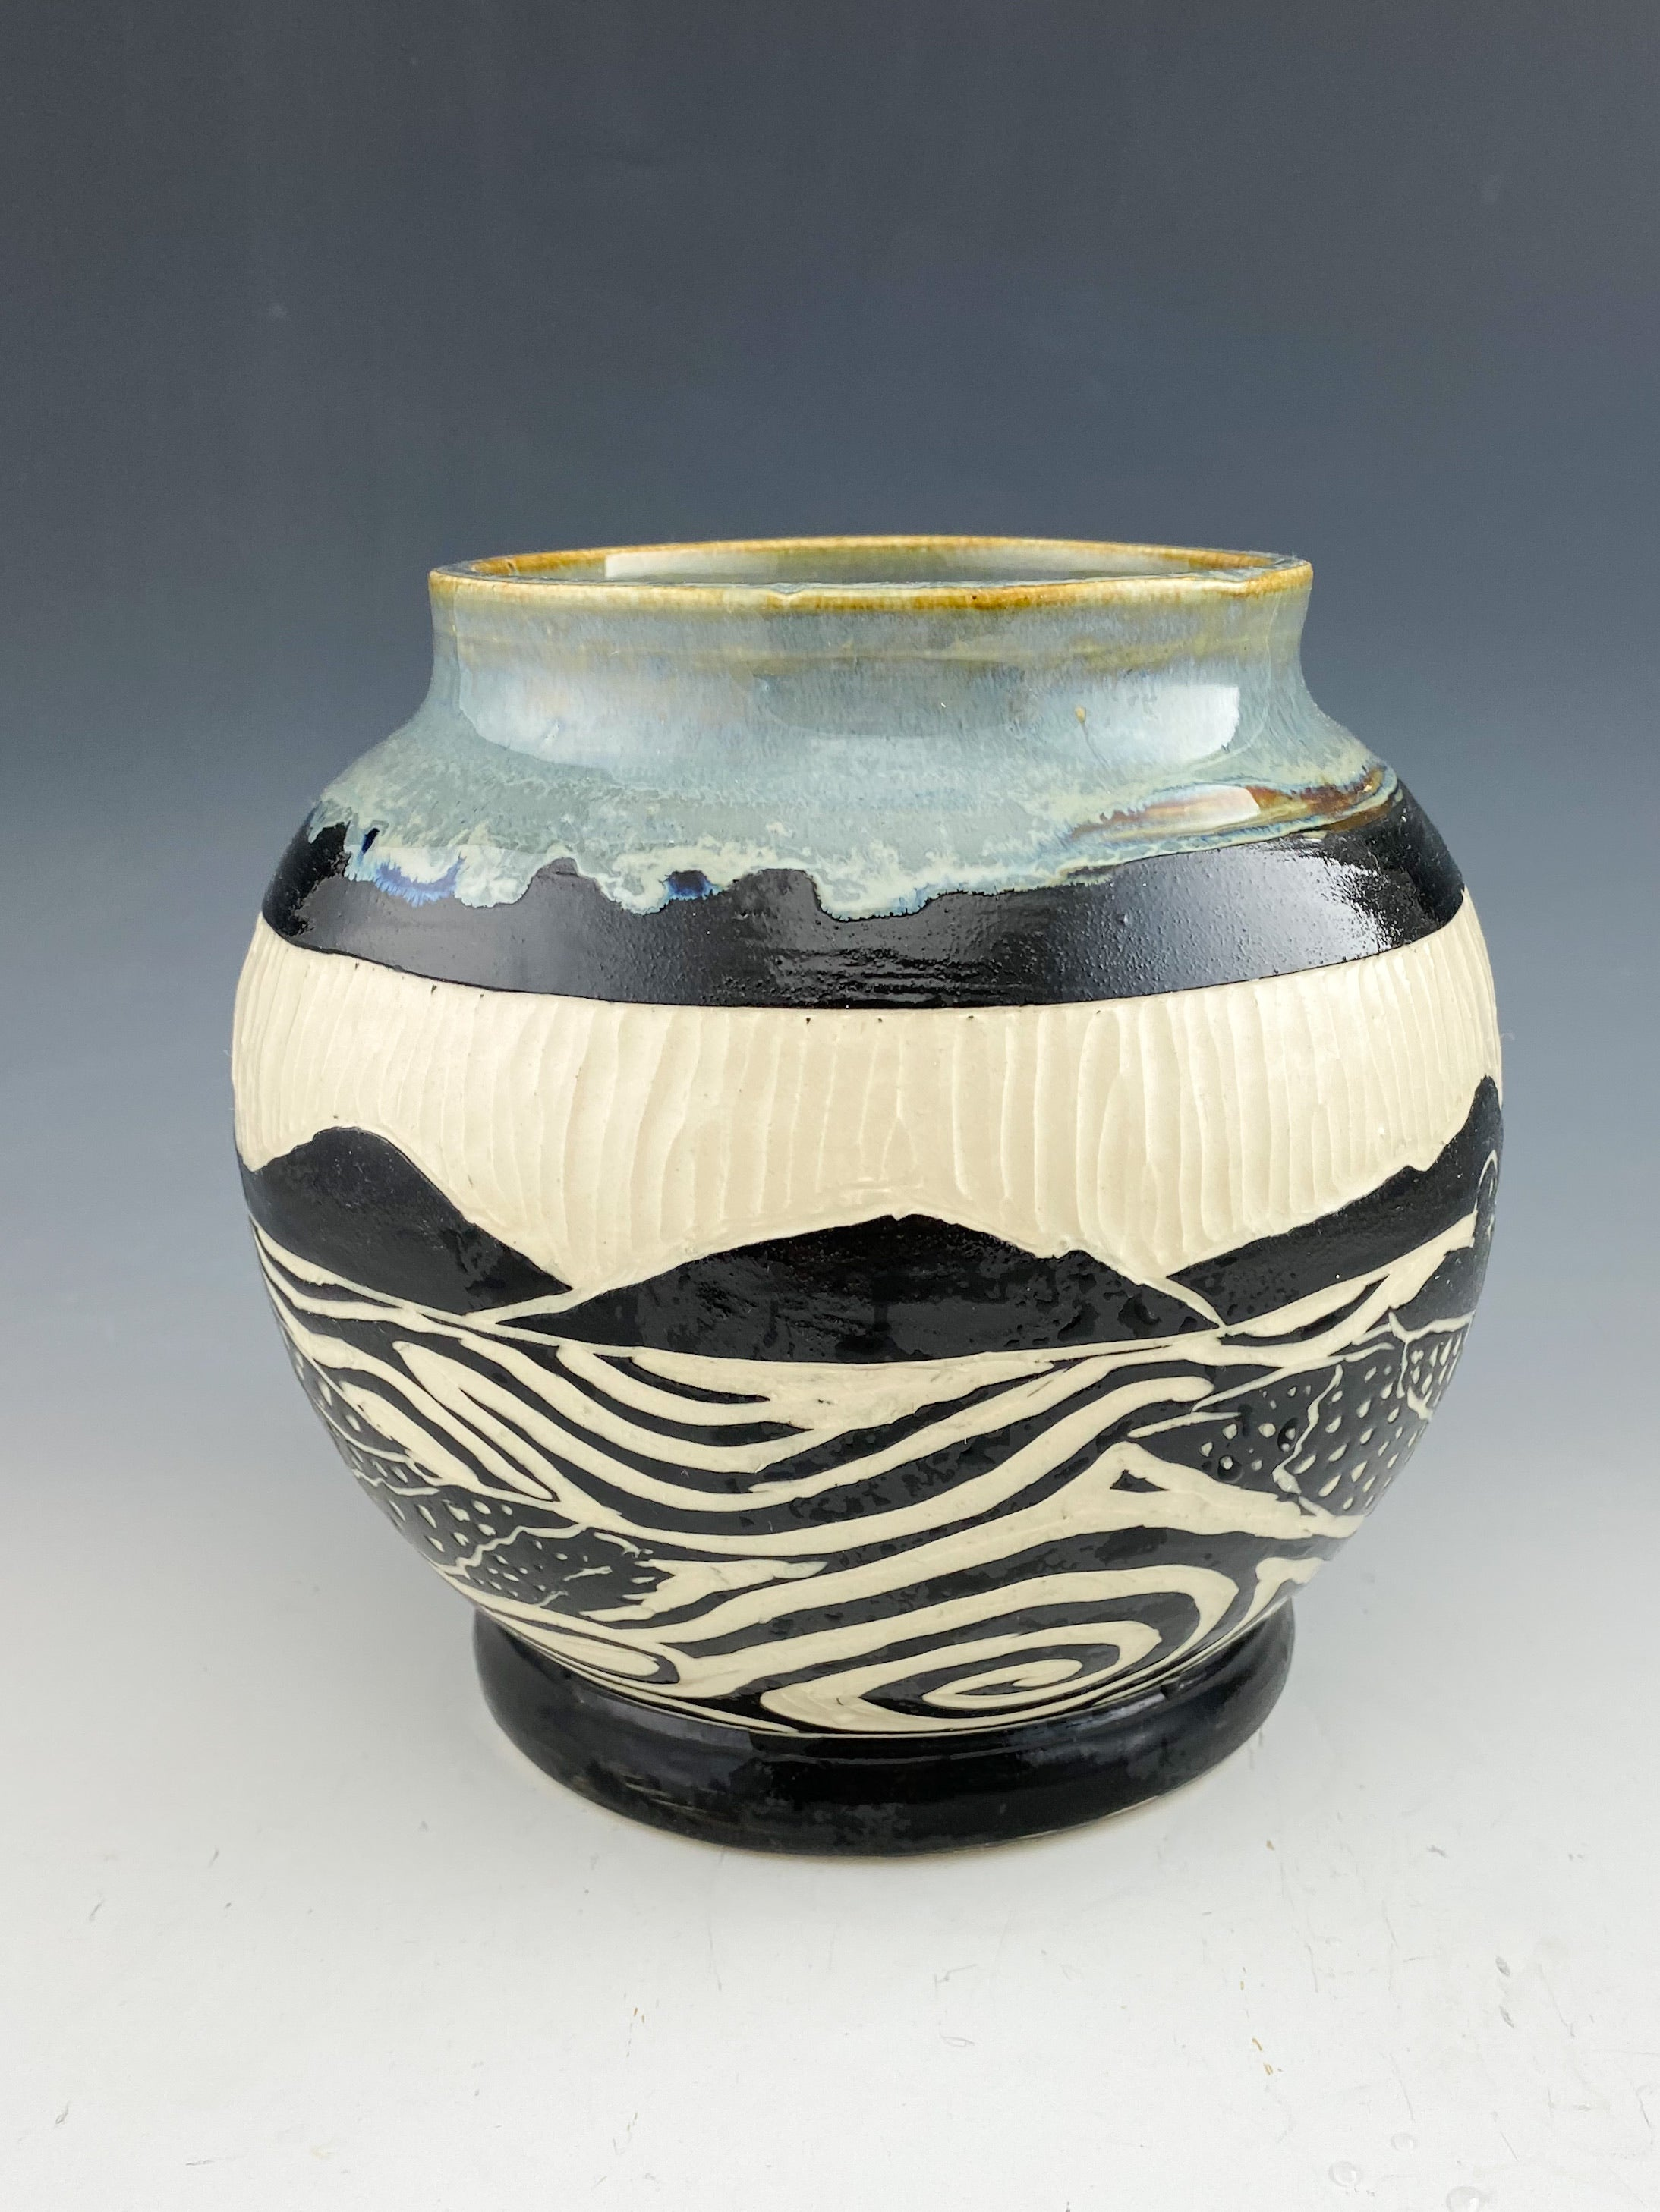 Loon vase in gray sgraffito handmade pottery